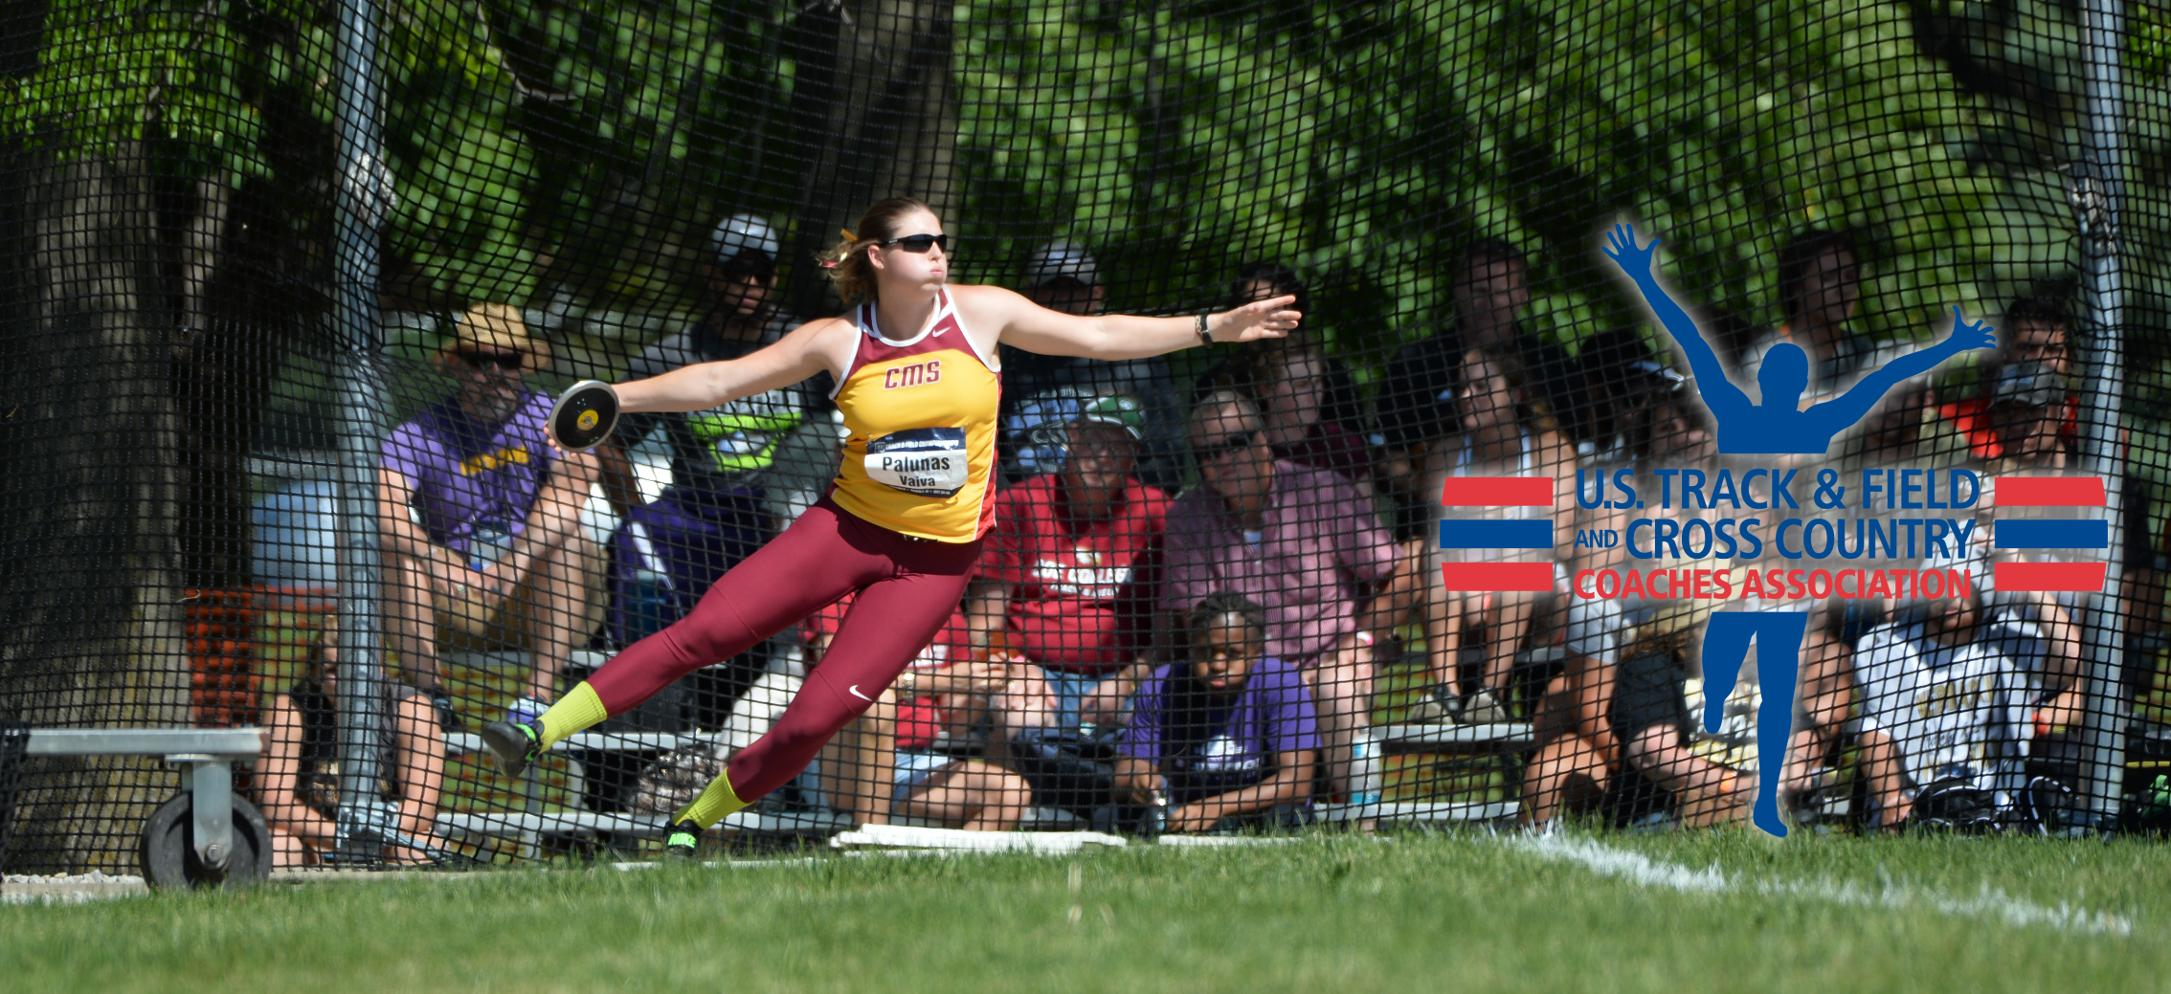 USTFCCCA releases All-Academic Teams and Individuals